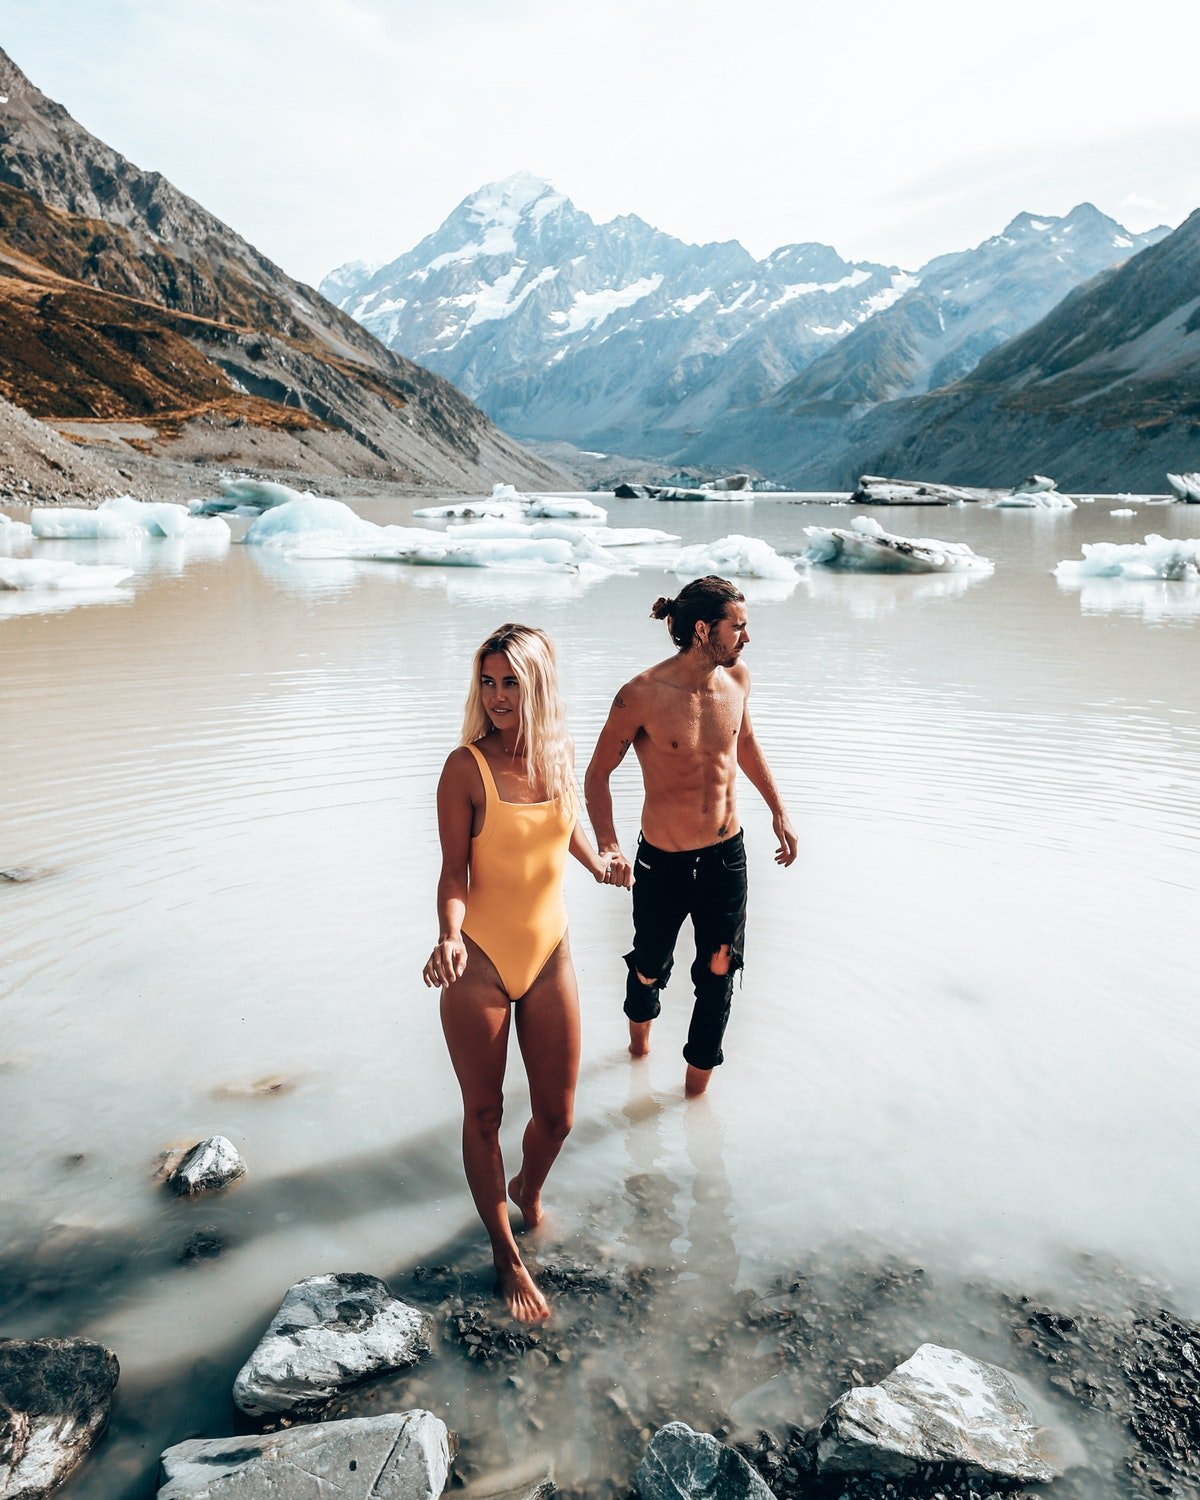 How To Plan A Vacation With Your Boyfriend Or Girlfriend, According To Pro Travel Couples